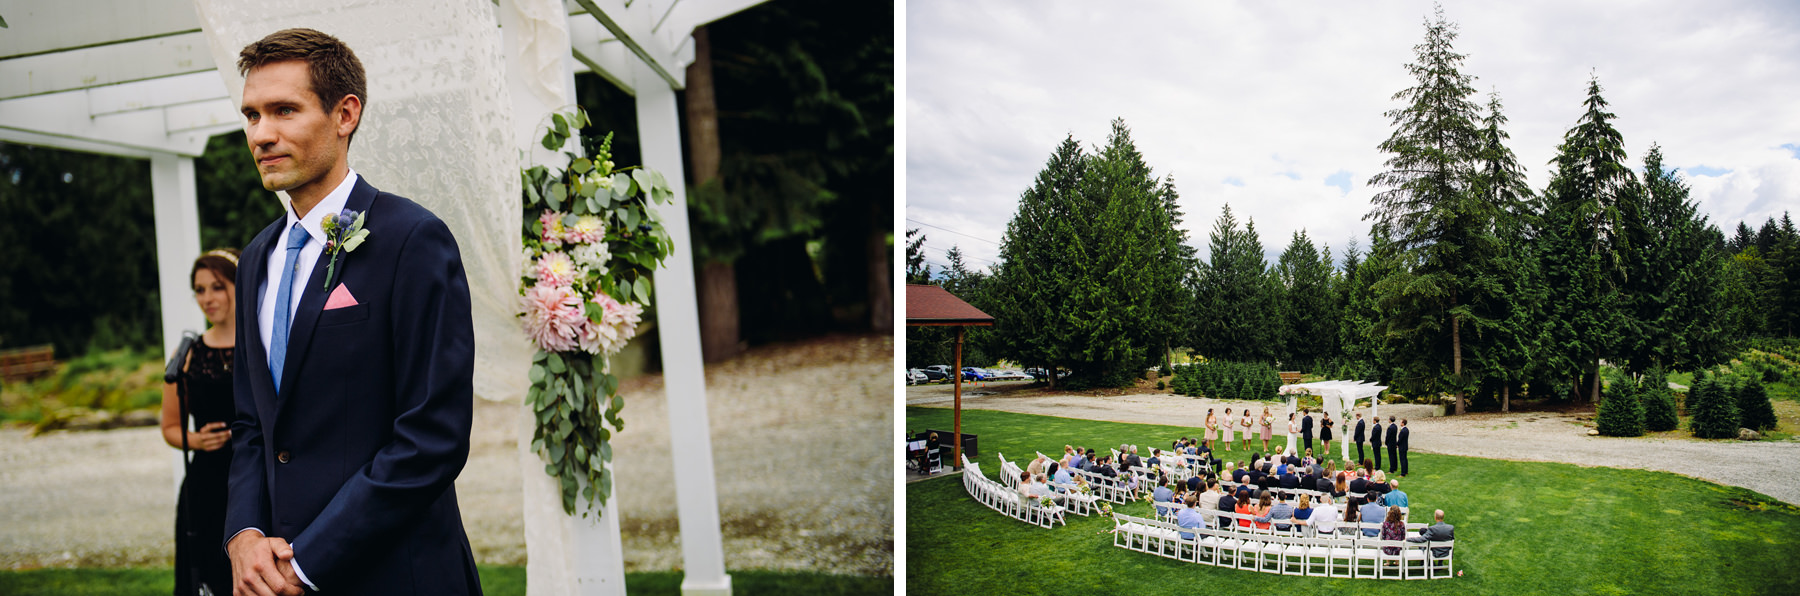 trinity-tree-farm-wedding-photos-25